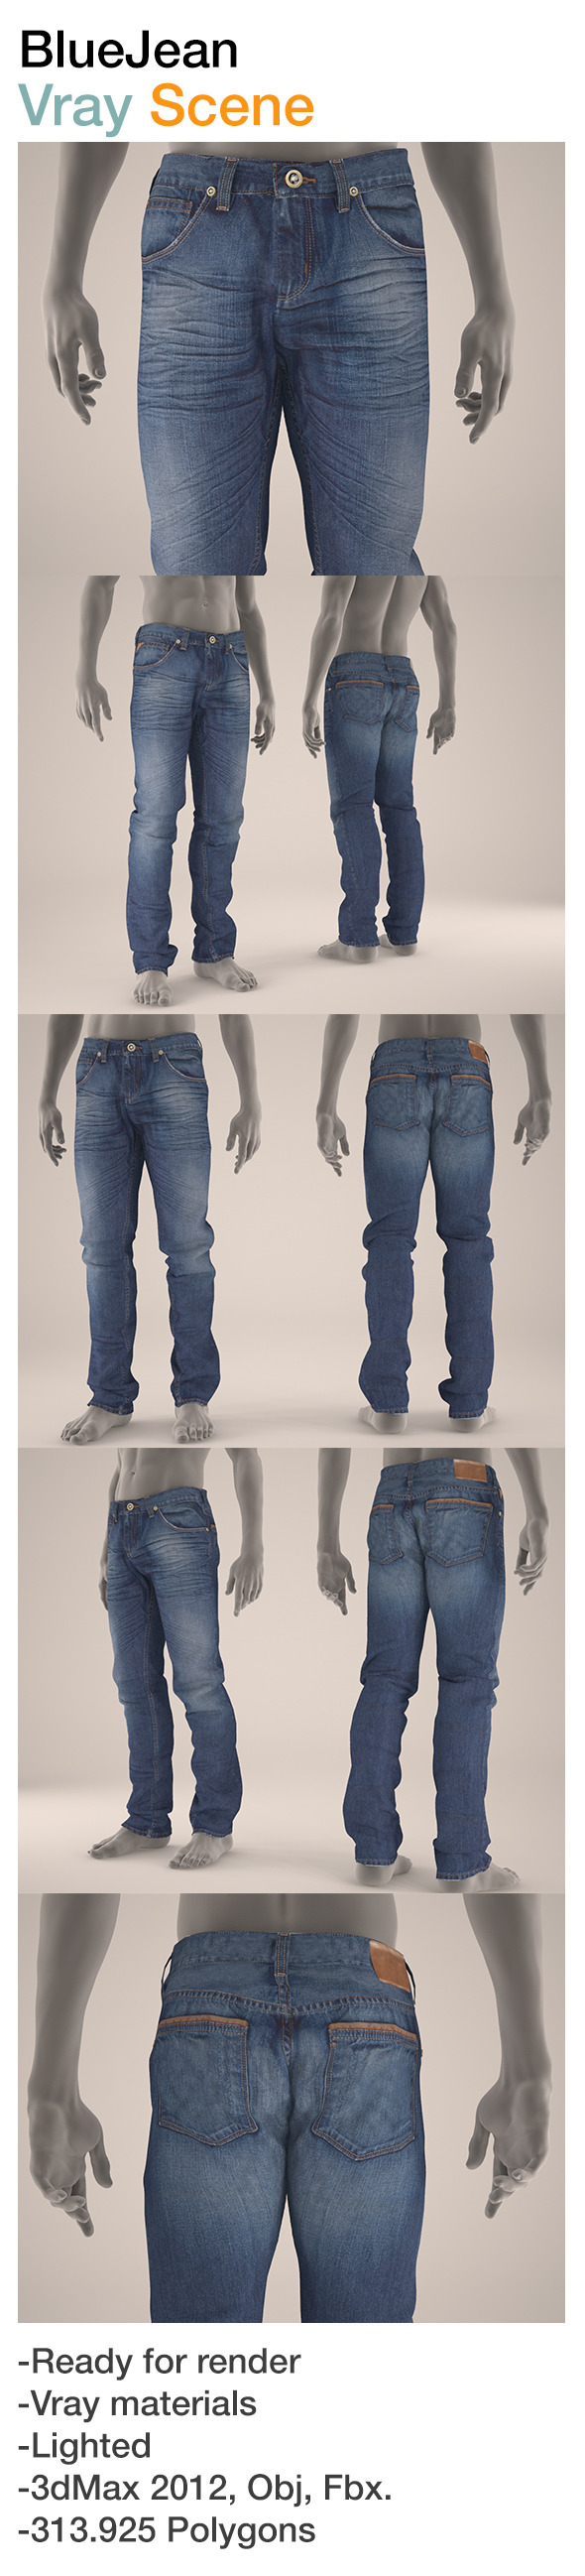 Blue Jean - 3DOcean Item for Sale